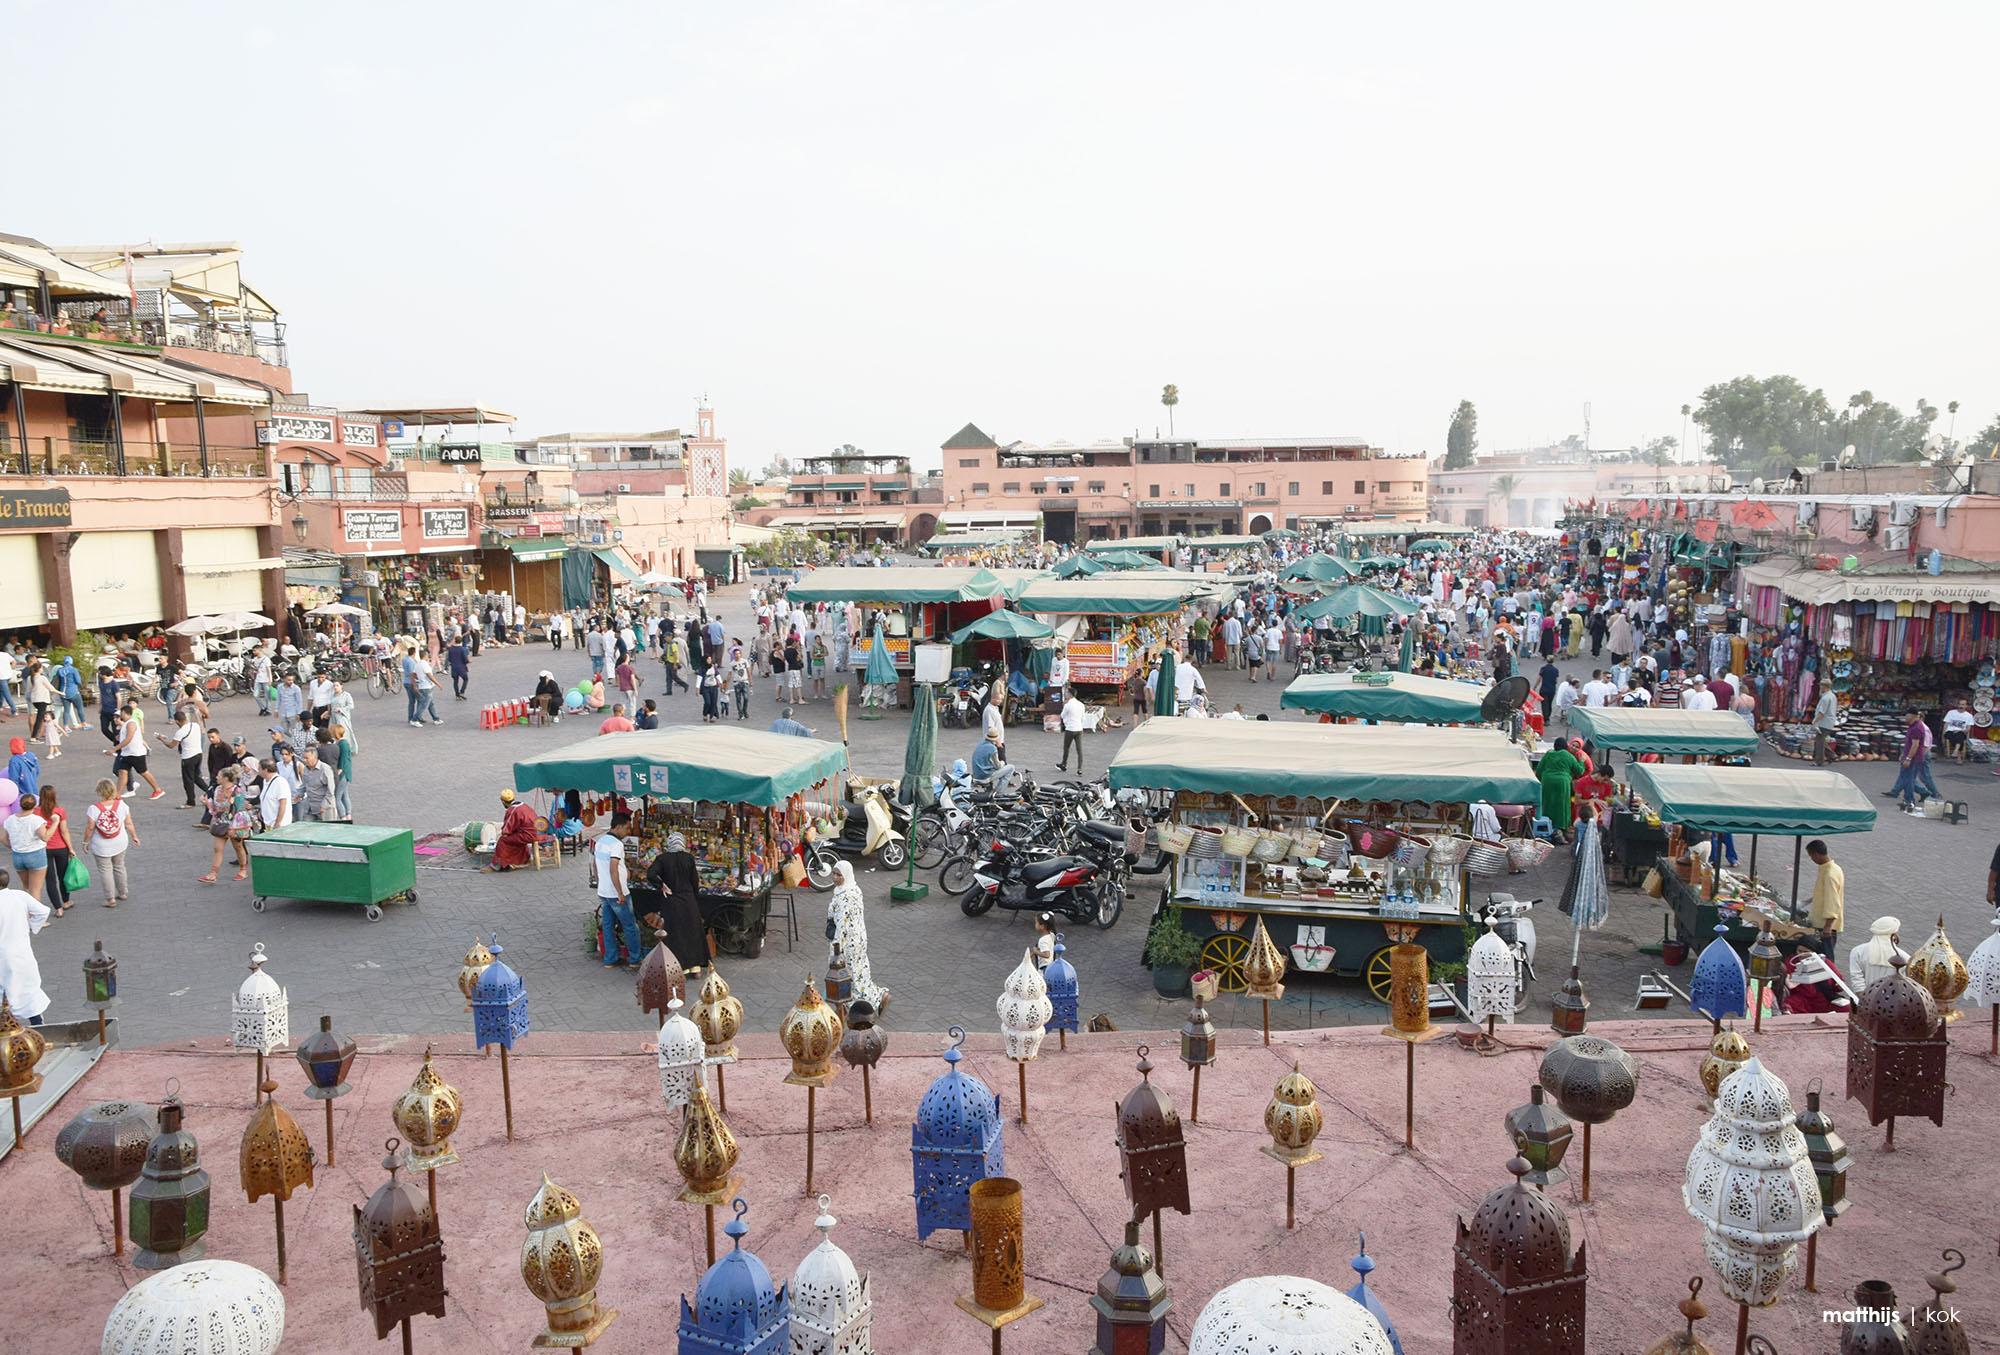 Djemaa el Fna, Marrakech | Photo by Matthijs Kok